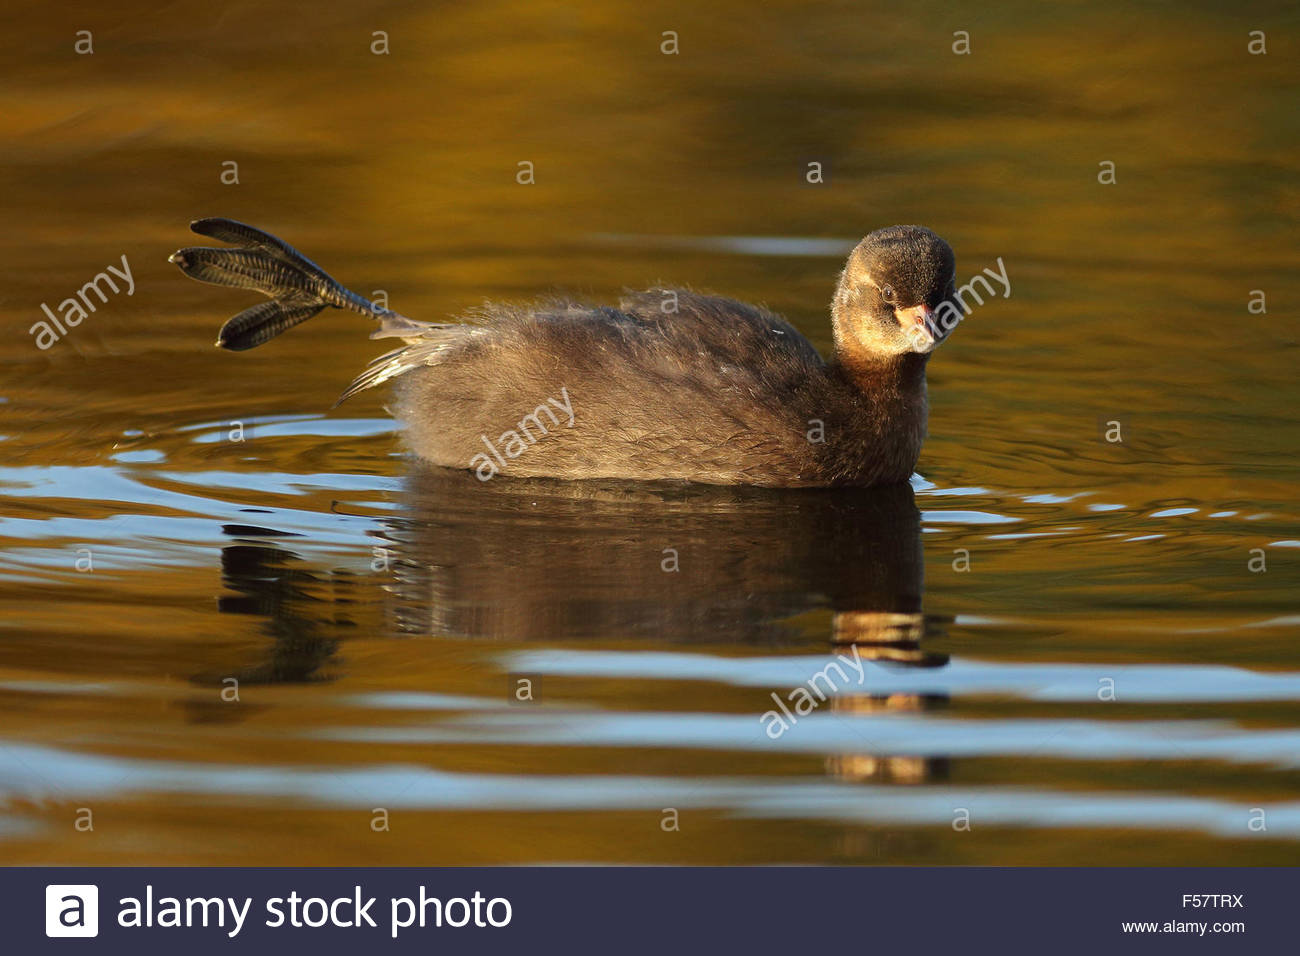 A juvenile Little Grebe stretching in a pond. - Stock Image